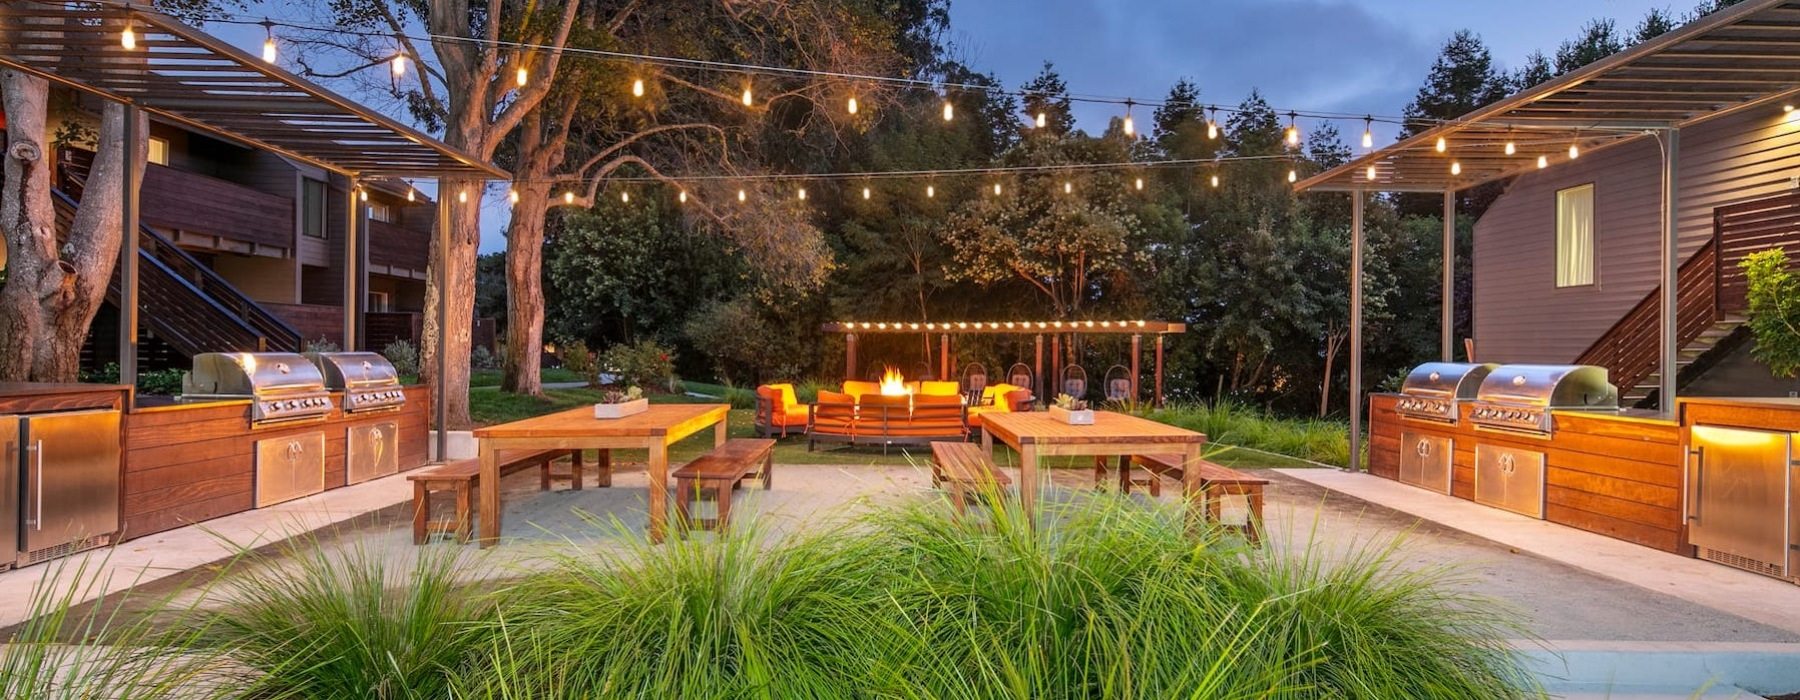 outdoor lounge area with a fire pit and near the pool